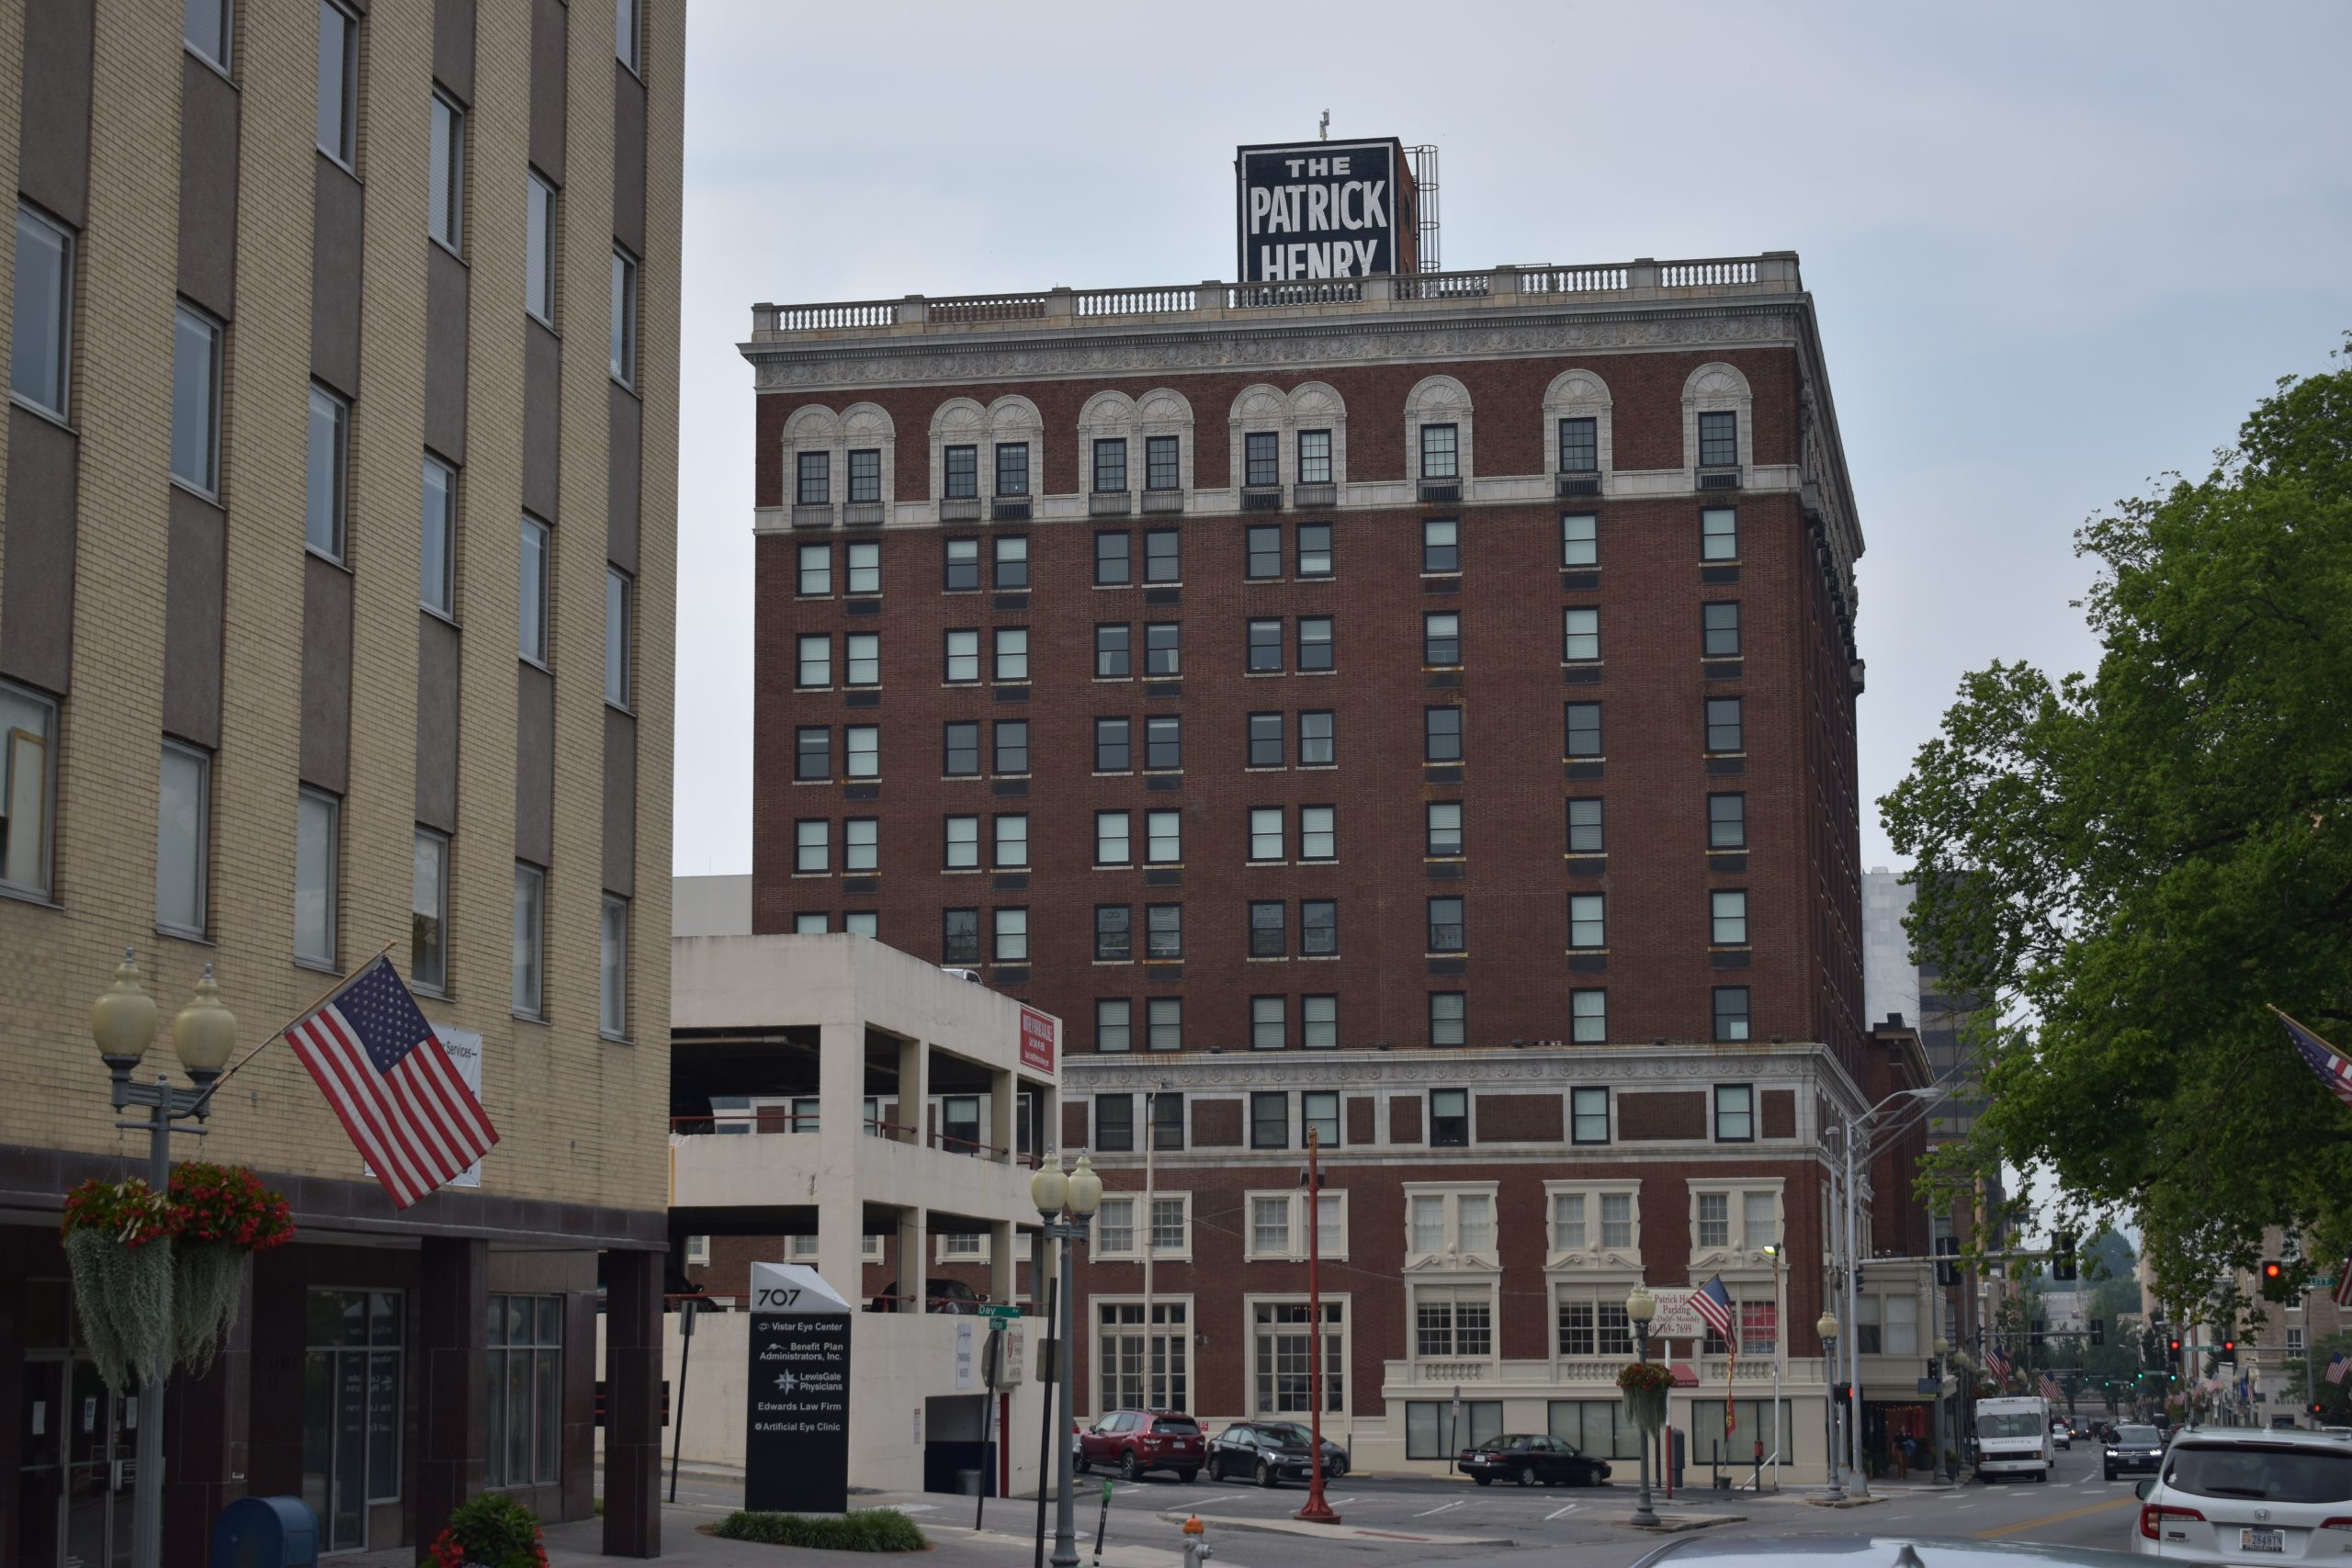 The Patrick Henry Hotel scaled